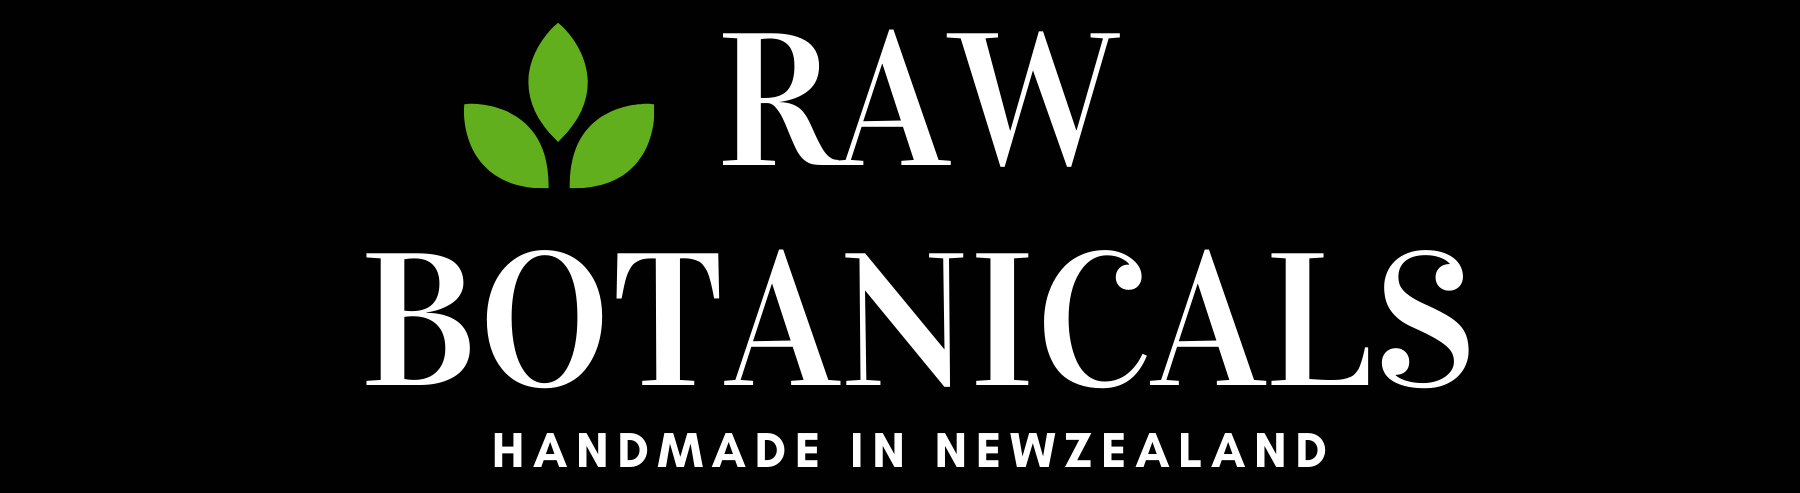 Raw Botanicals